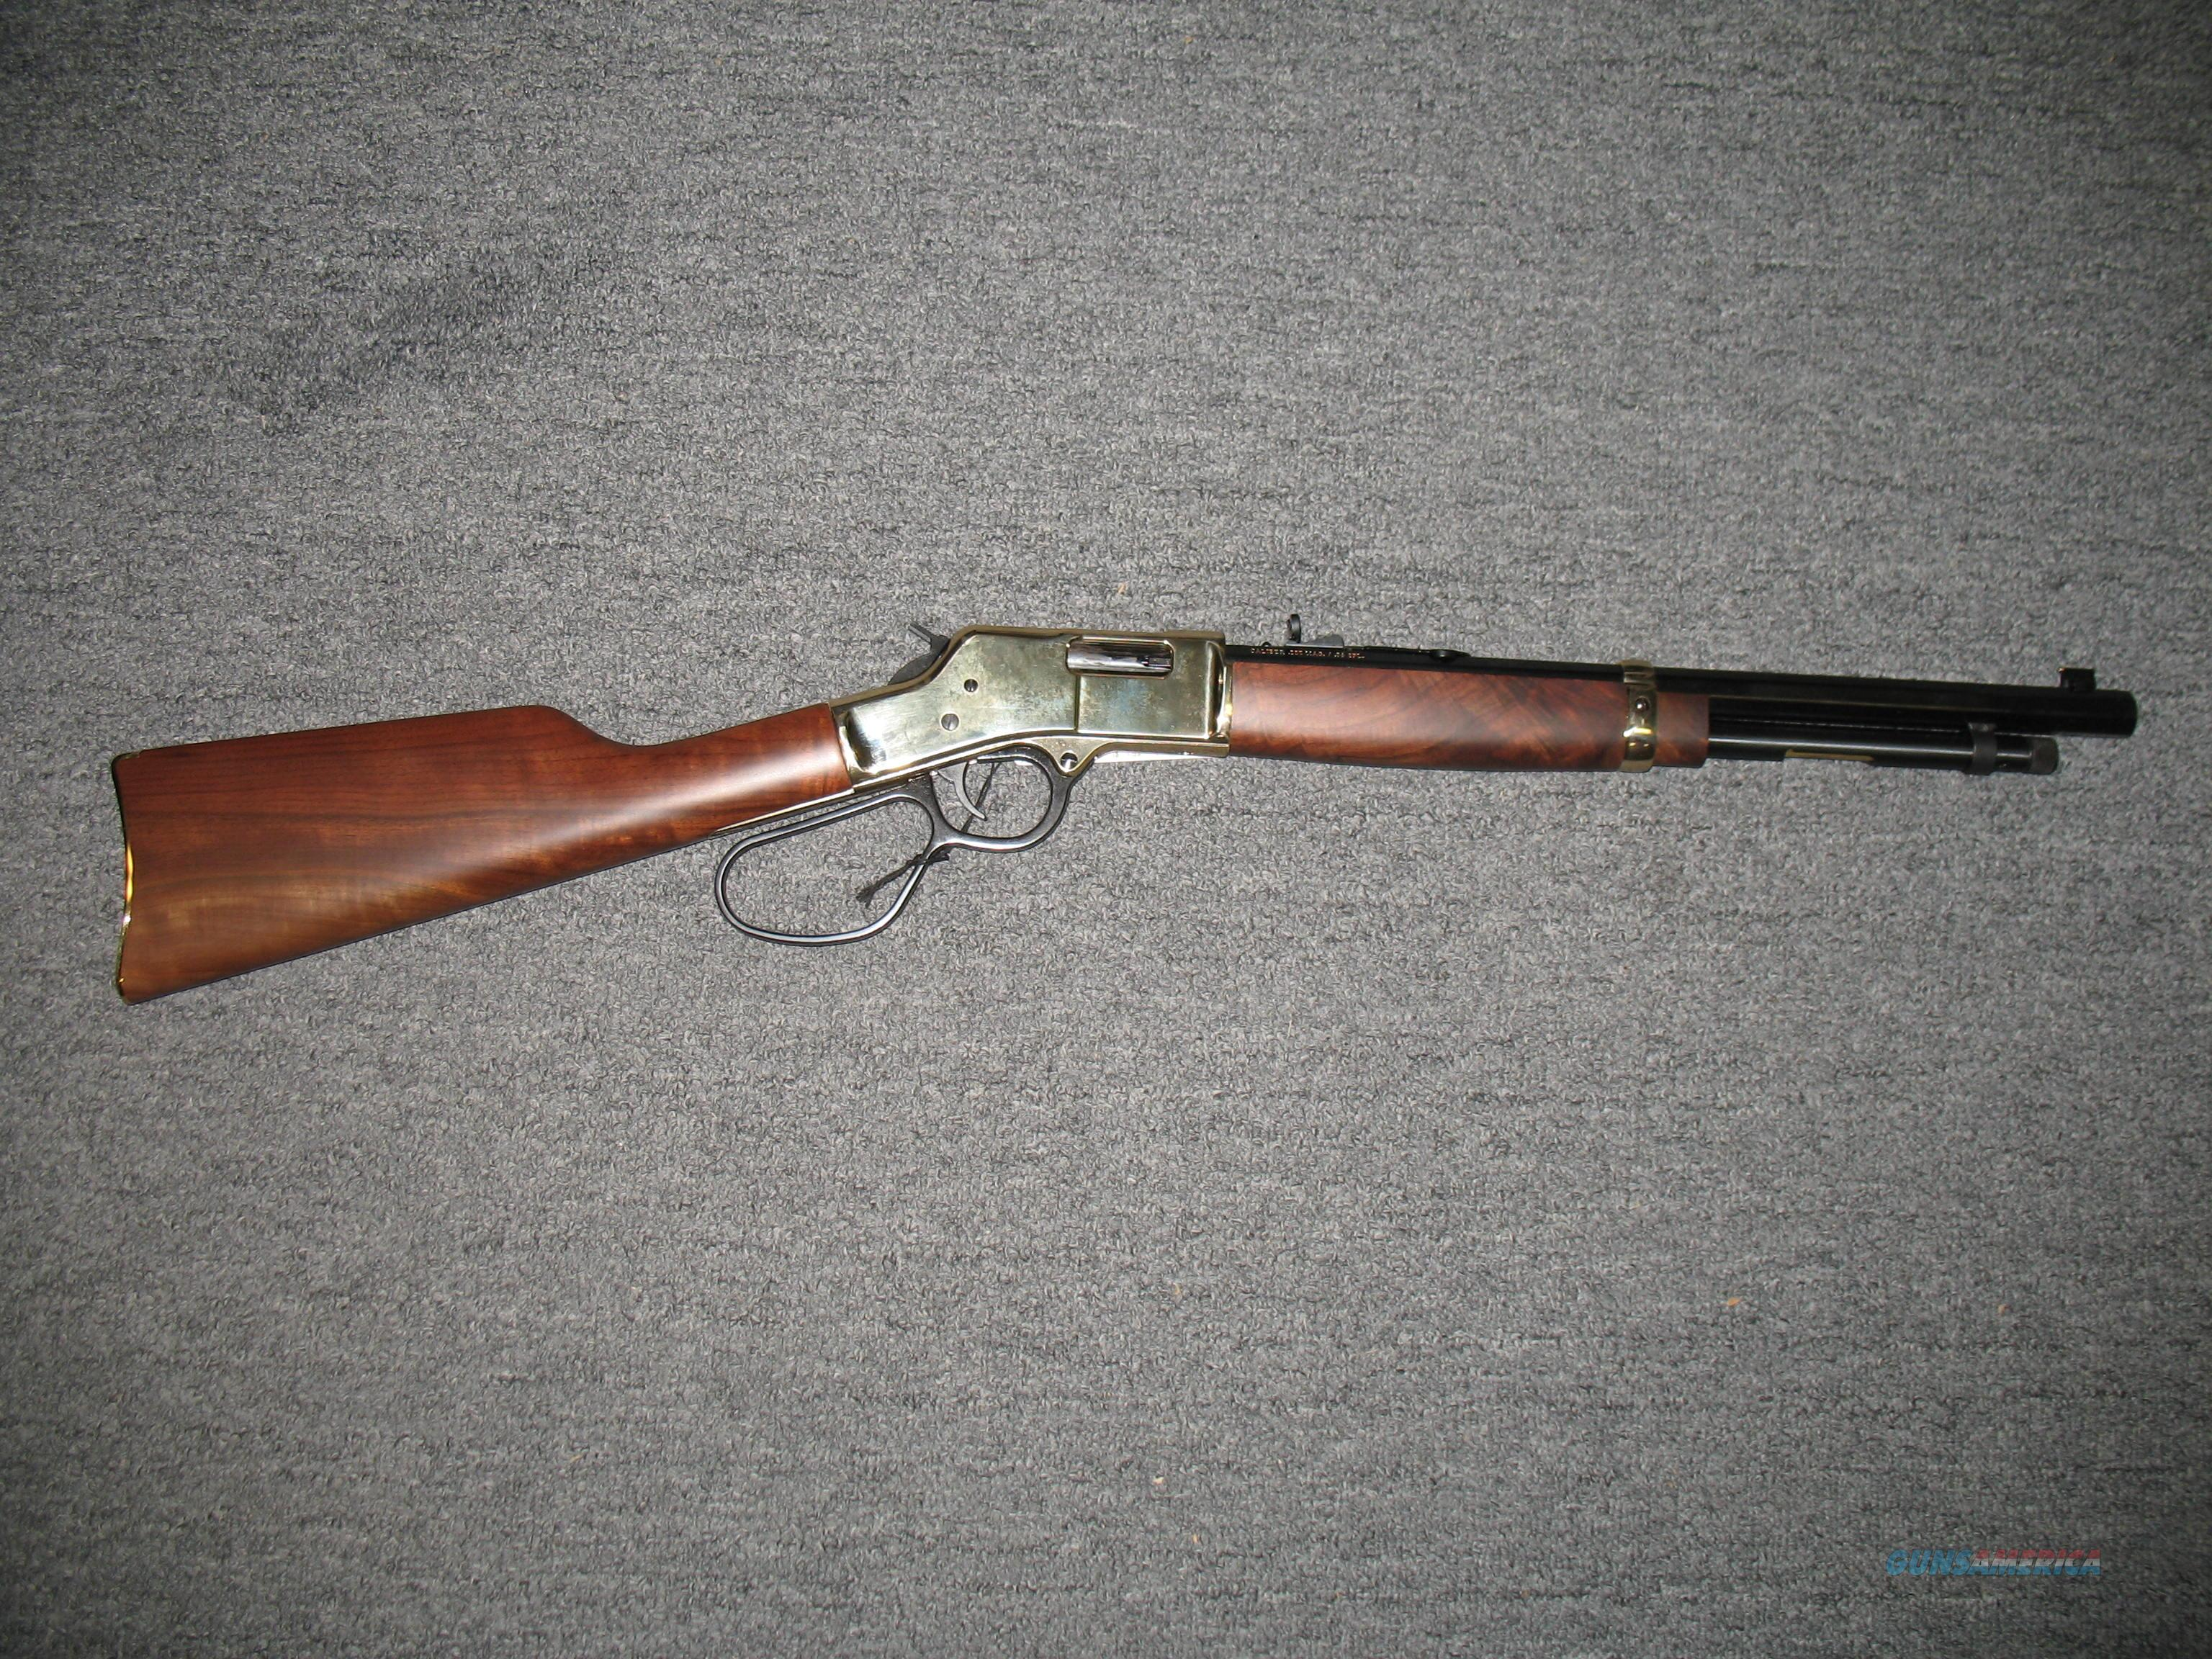 Henry H006MR Big Boy in .357 magnum & .38 spl  Guns > Rifles > Henry Rifle Company